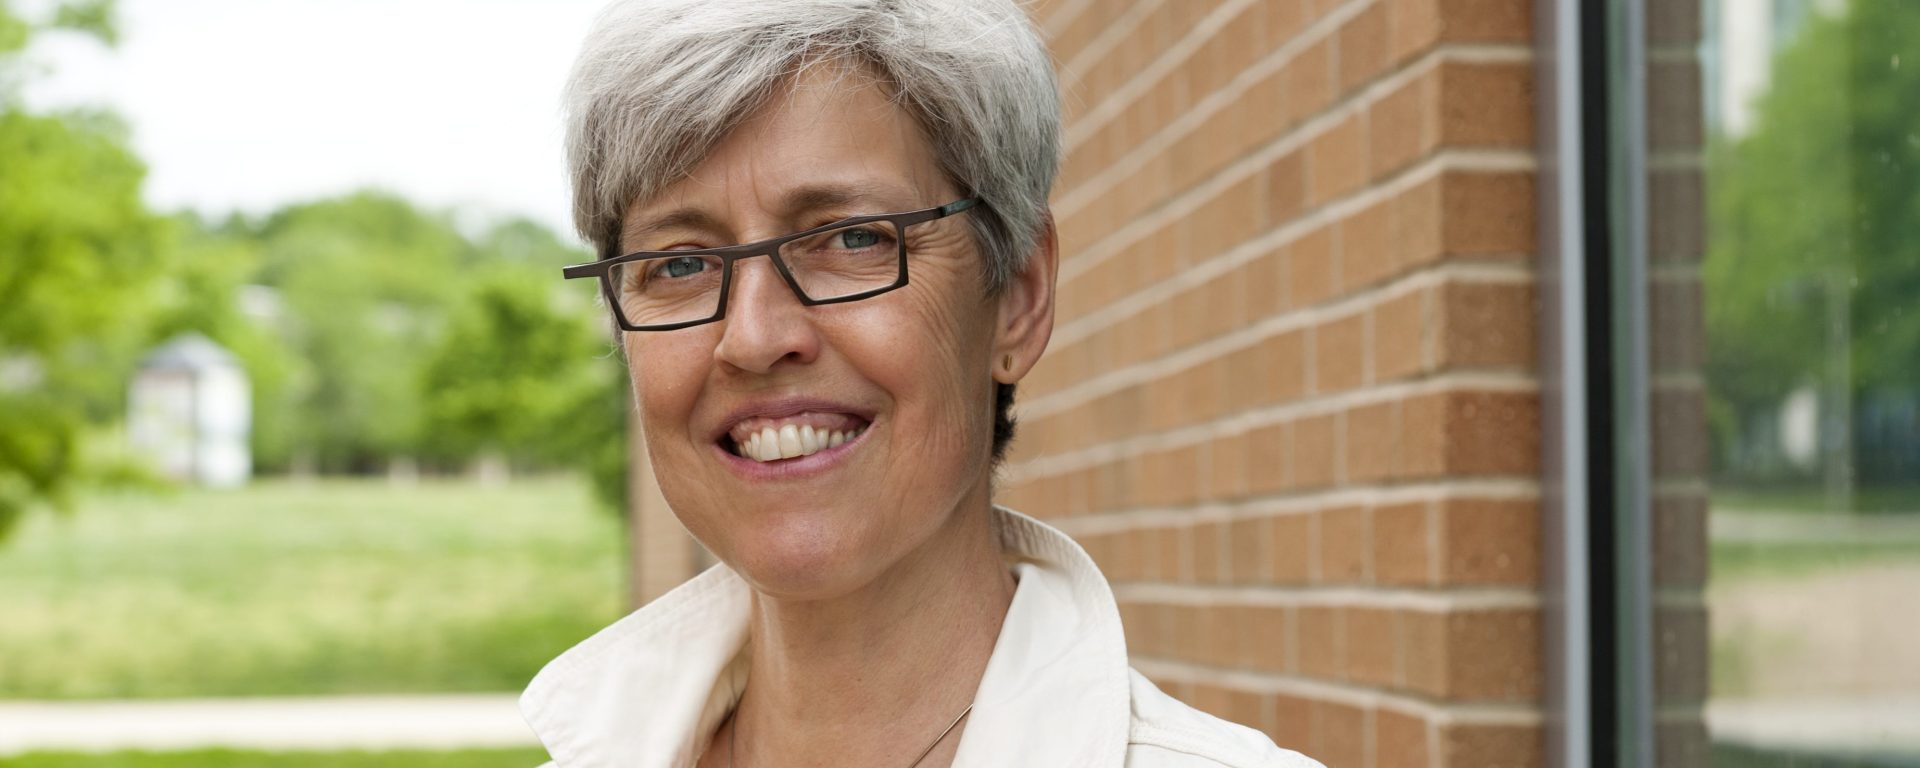 A woman with short grey hair with dark rimmed glasses and wearing a white dress shirt smiles at the camera. A red brick building and a small green tree is behind her.